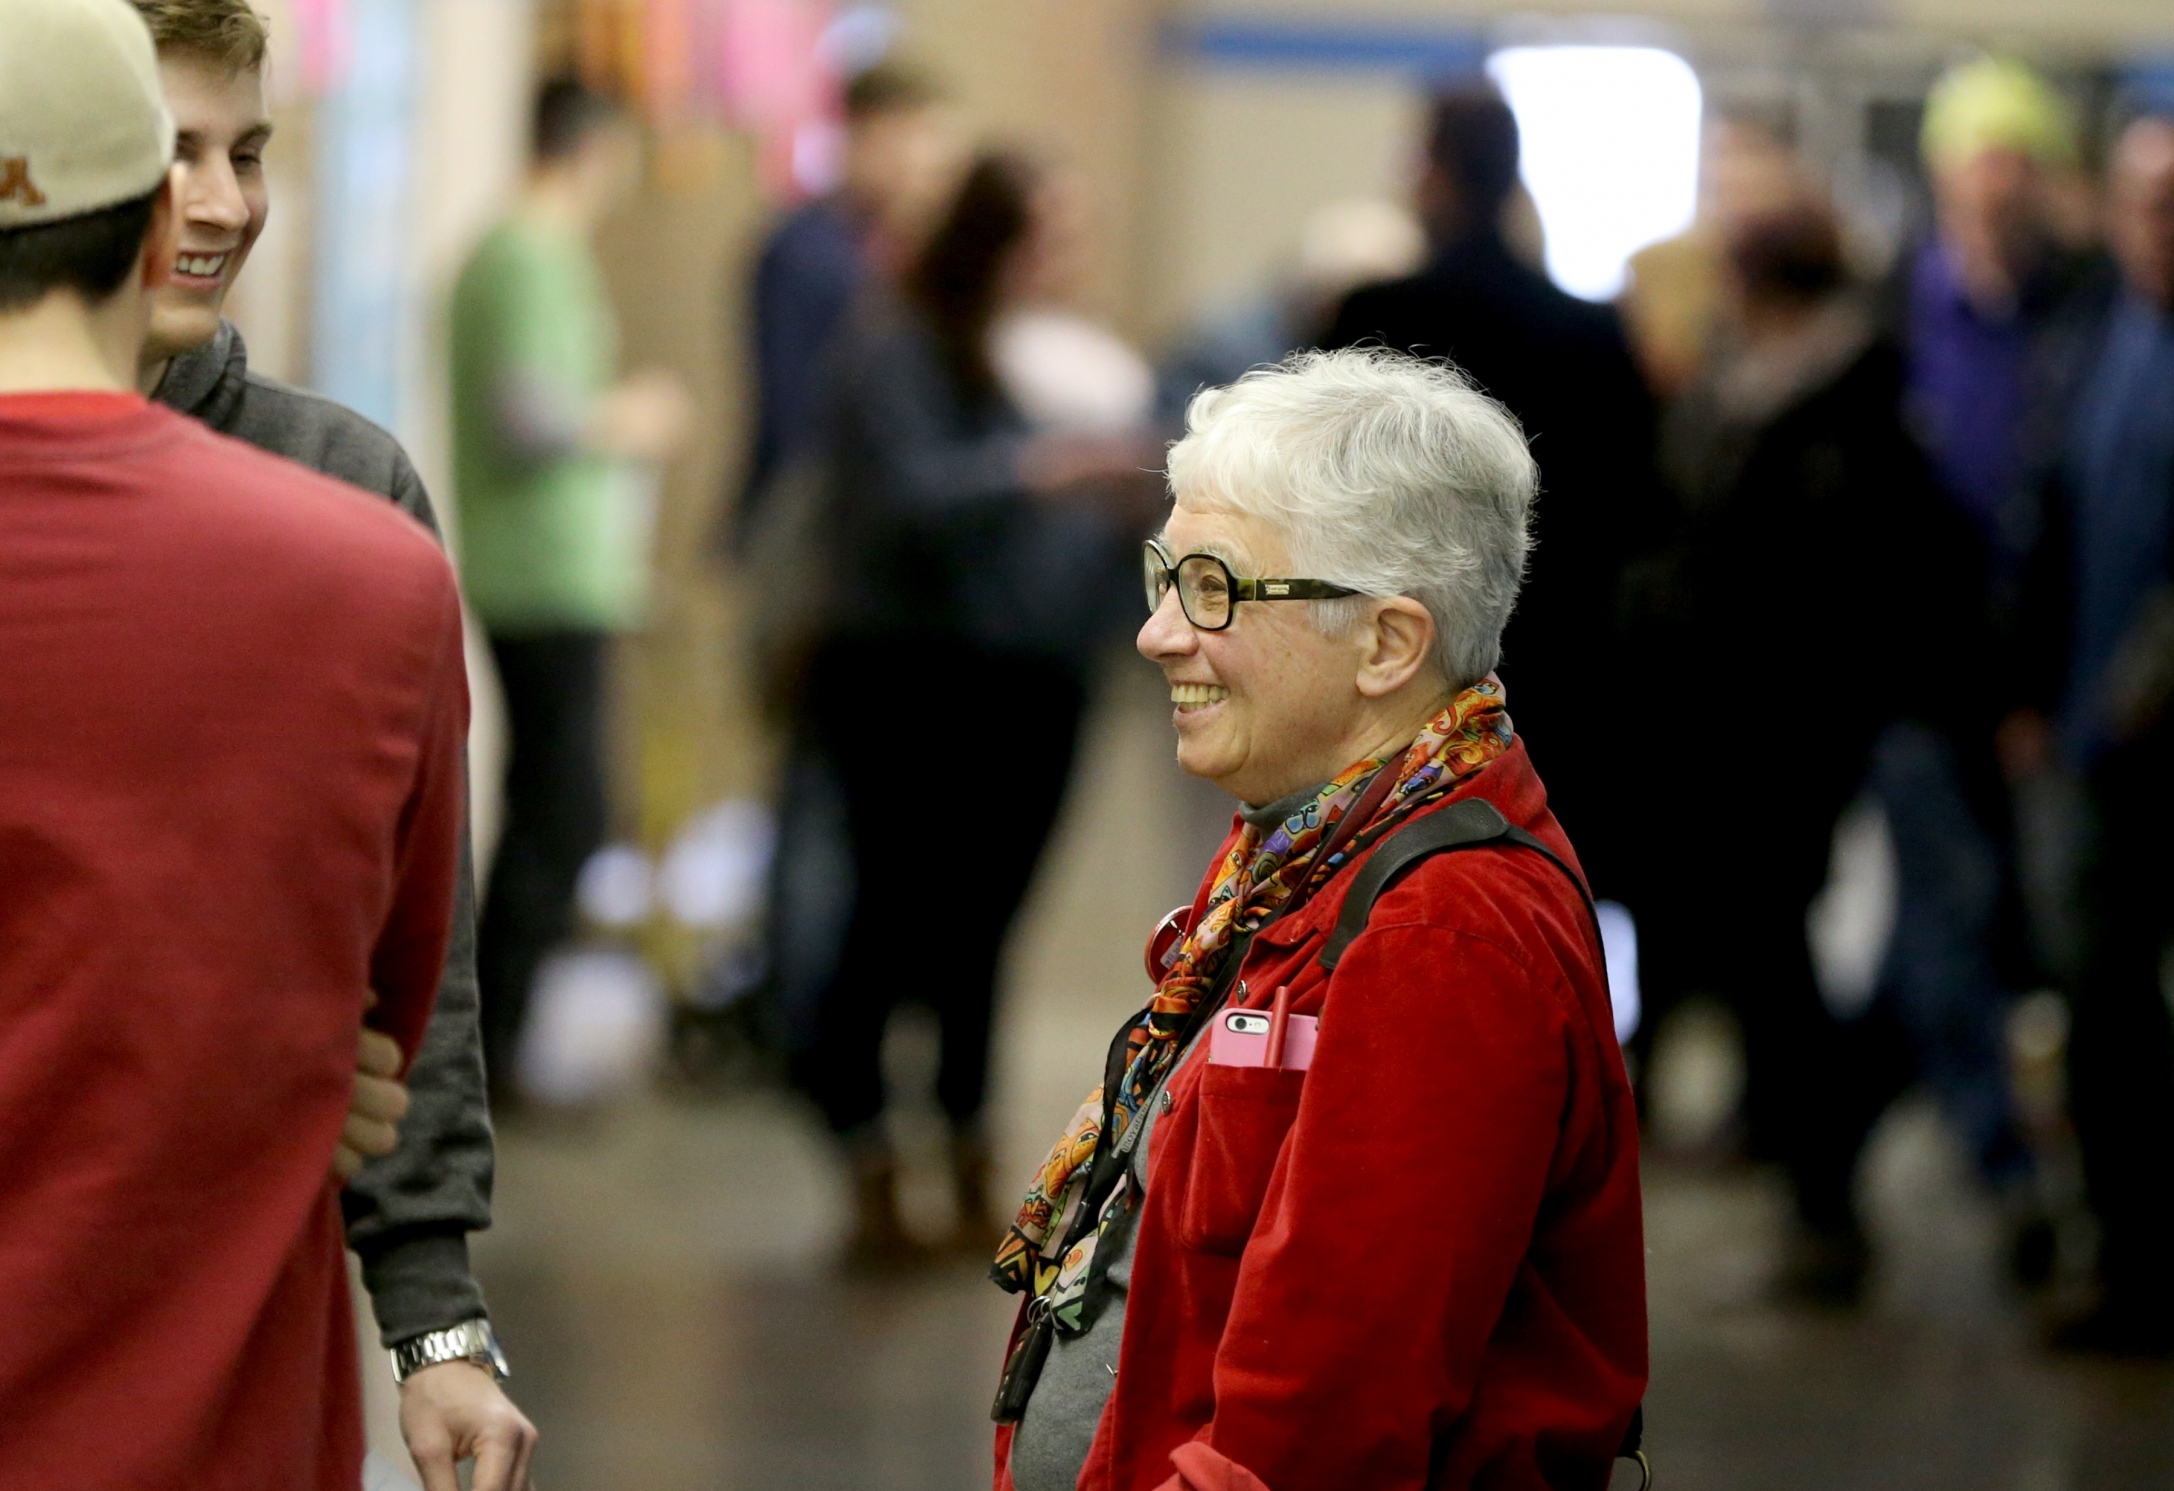 DFL Rep. Phyllis Kahn spoke with delegates in a hallway at Northeast Middle School prior to the start of the DFL endorsing convention Saturday, April 9, 2016, in Minneapolis, MN.](DAVID JOLES/STARTRIBUNE)djoles@startribune.com DFL Rep. Phyllis Kahn, the longest serving member of the Minnesota Legislature, faces two insurgent DFL challengers from the Somali community. Her endorsement battle Saturday could be the end of her political career if she loses. She has said she will not run in a primary in the DFL stronghold, which means Minnesota would likely have its first Somali-American legislator.